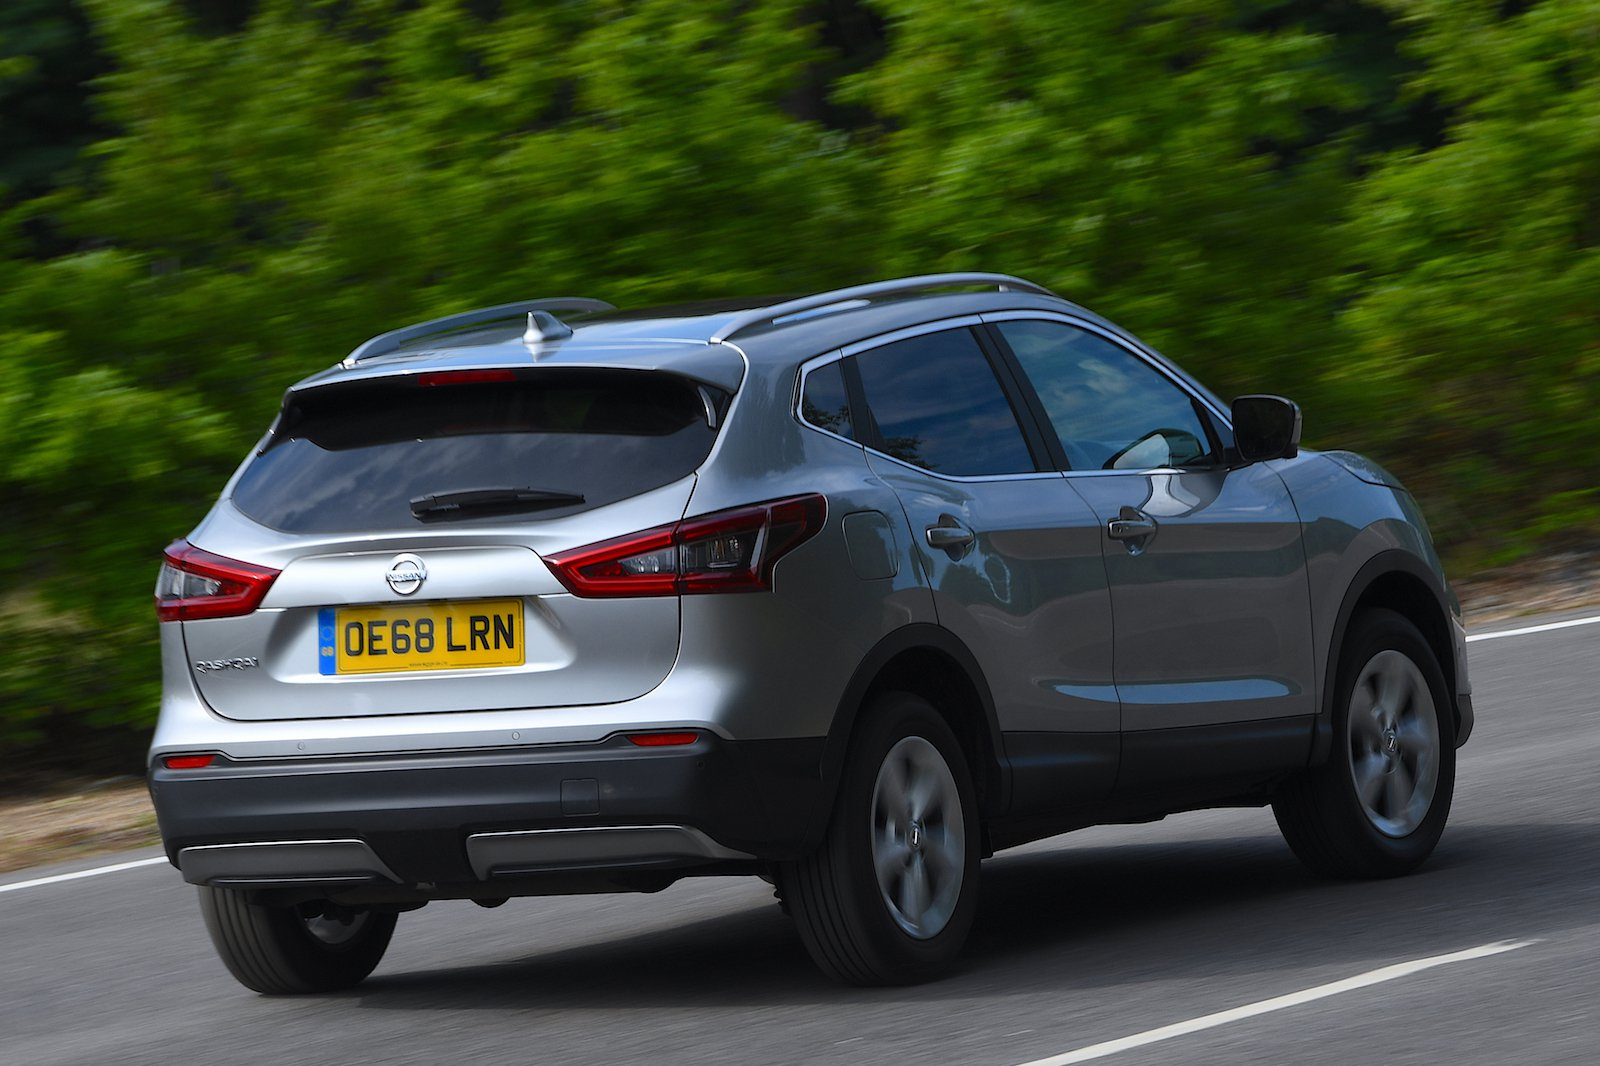 Used Nissan Qashqai long-term test review